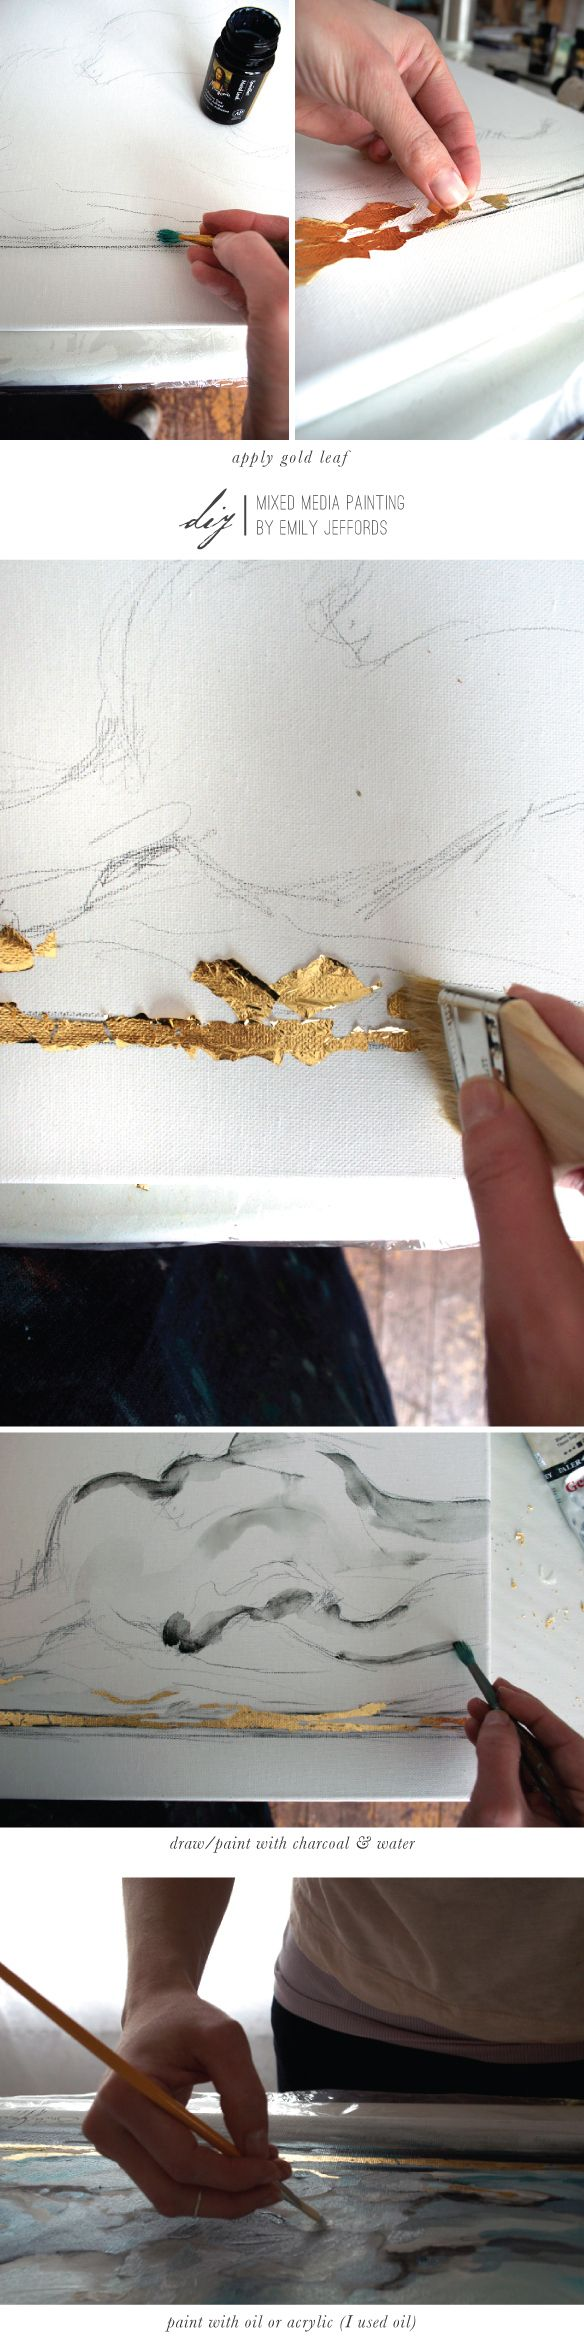 Mixed Media Painting How To: Emily Jeffords, Beautiful Hello Blog